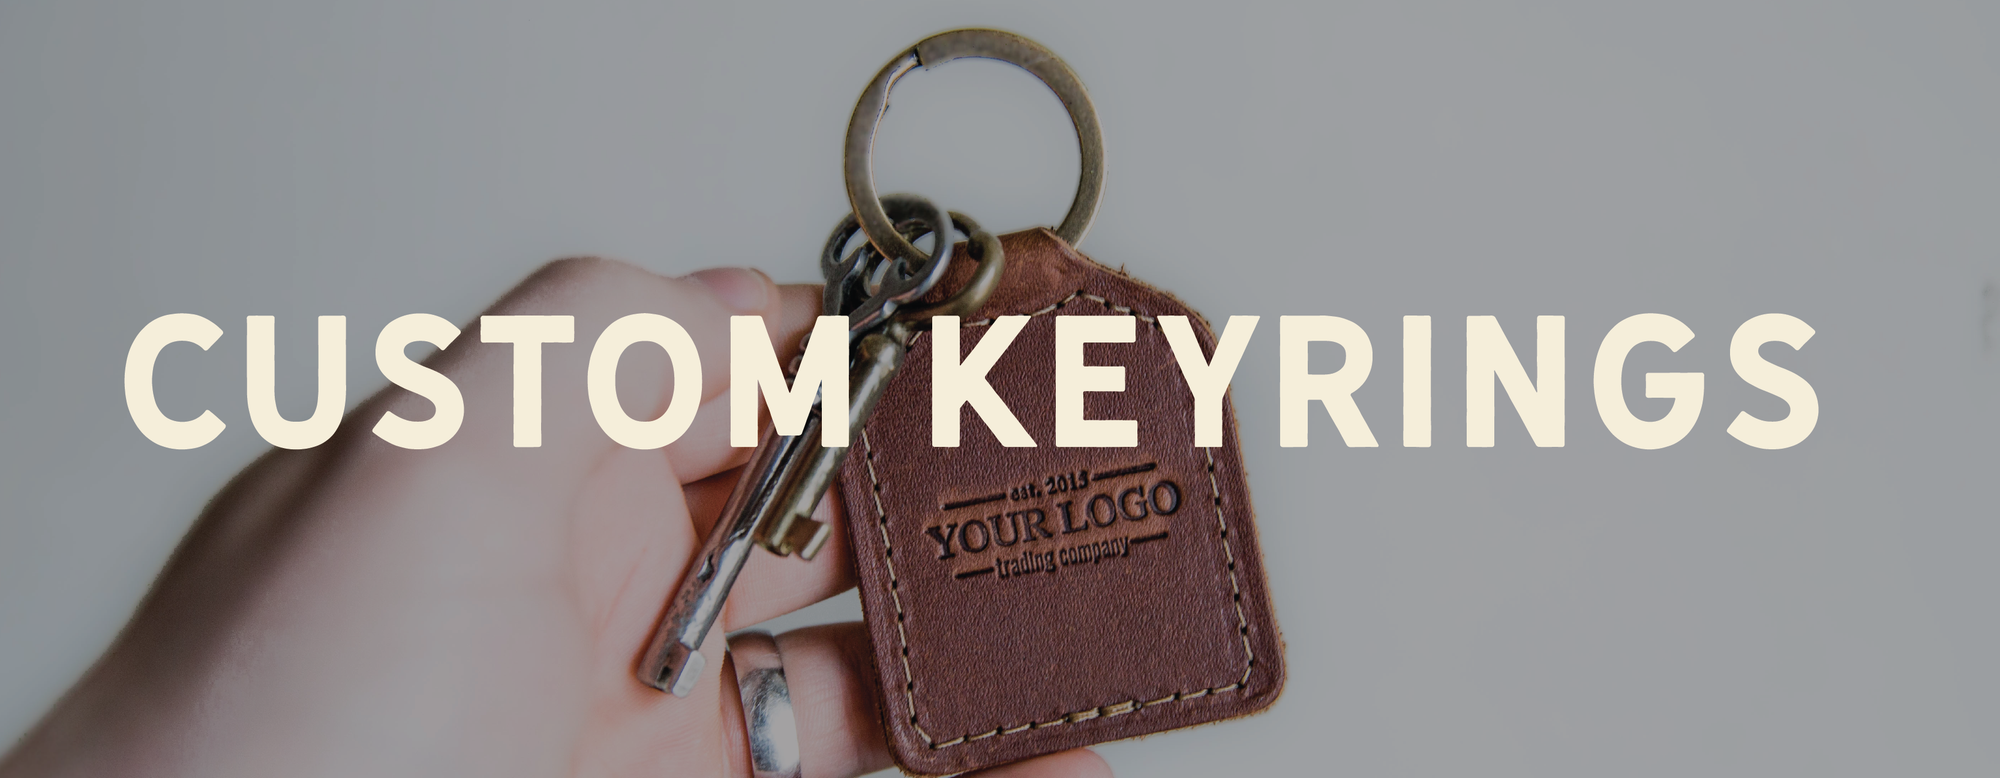 Corporate Keyrings and Travel